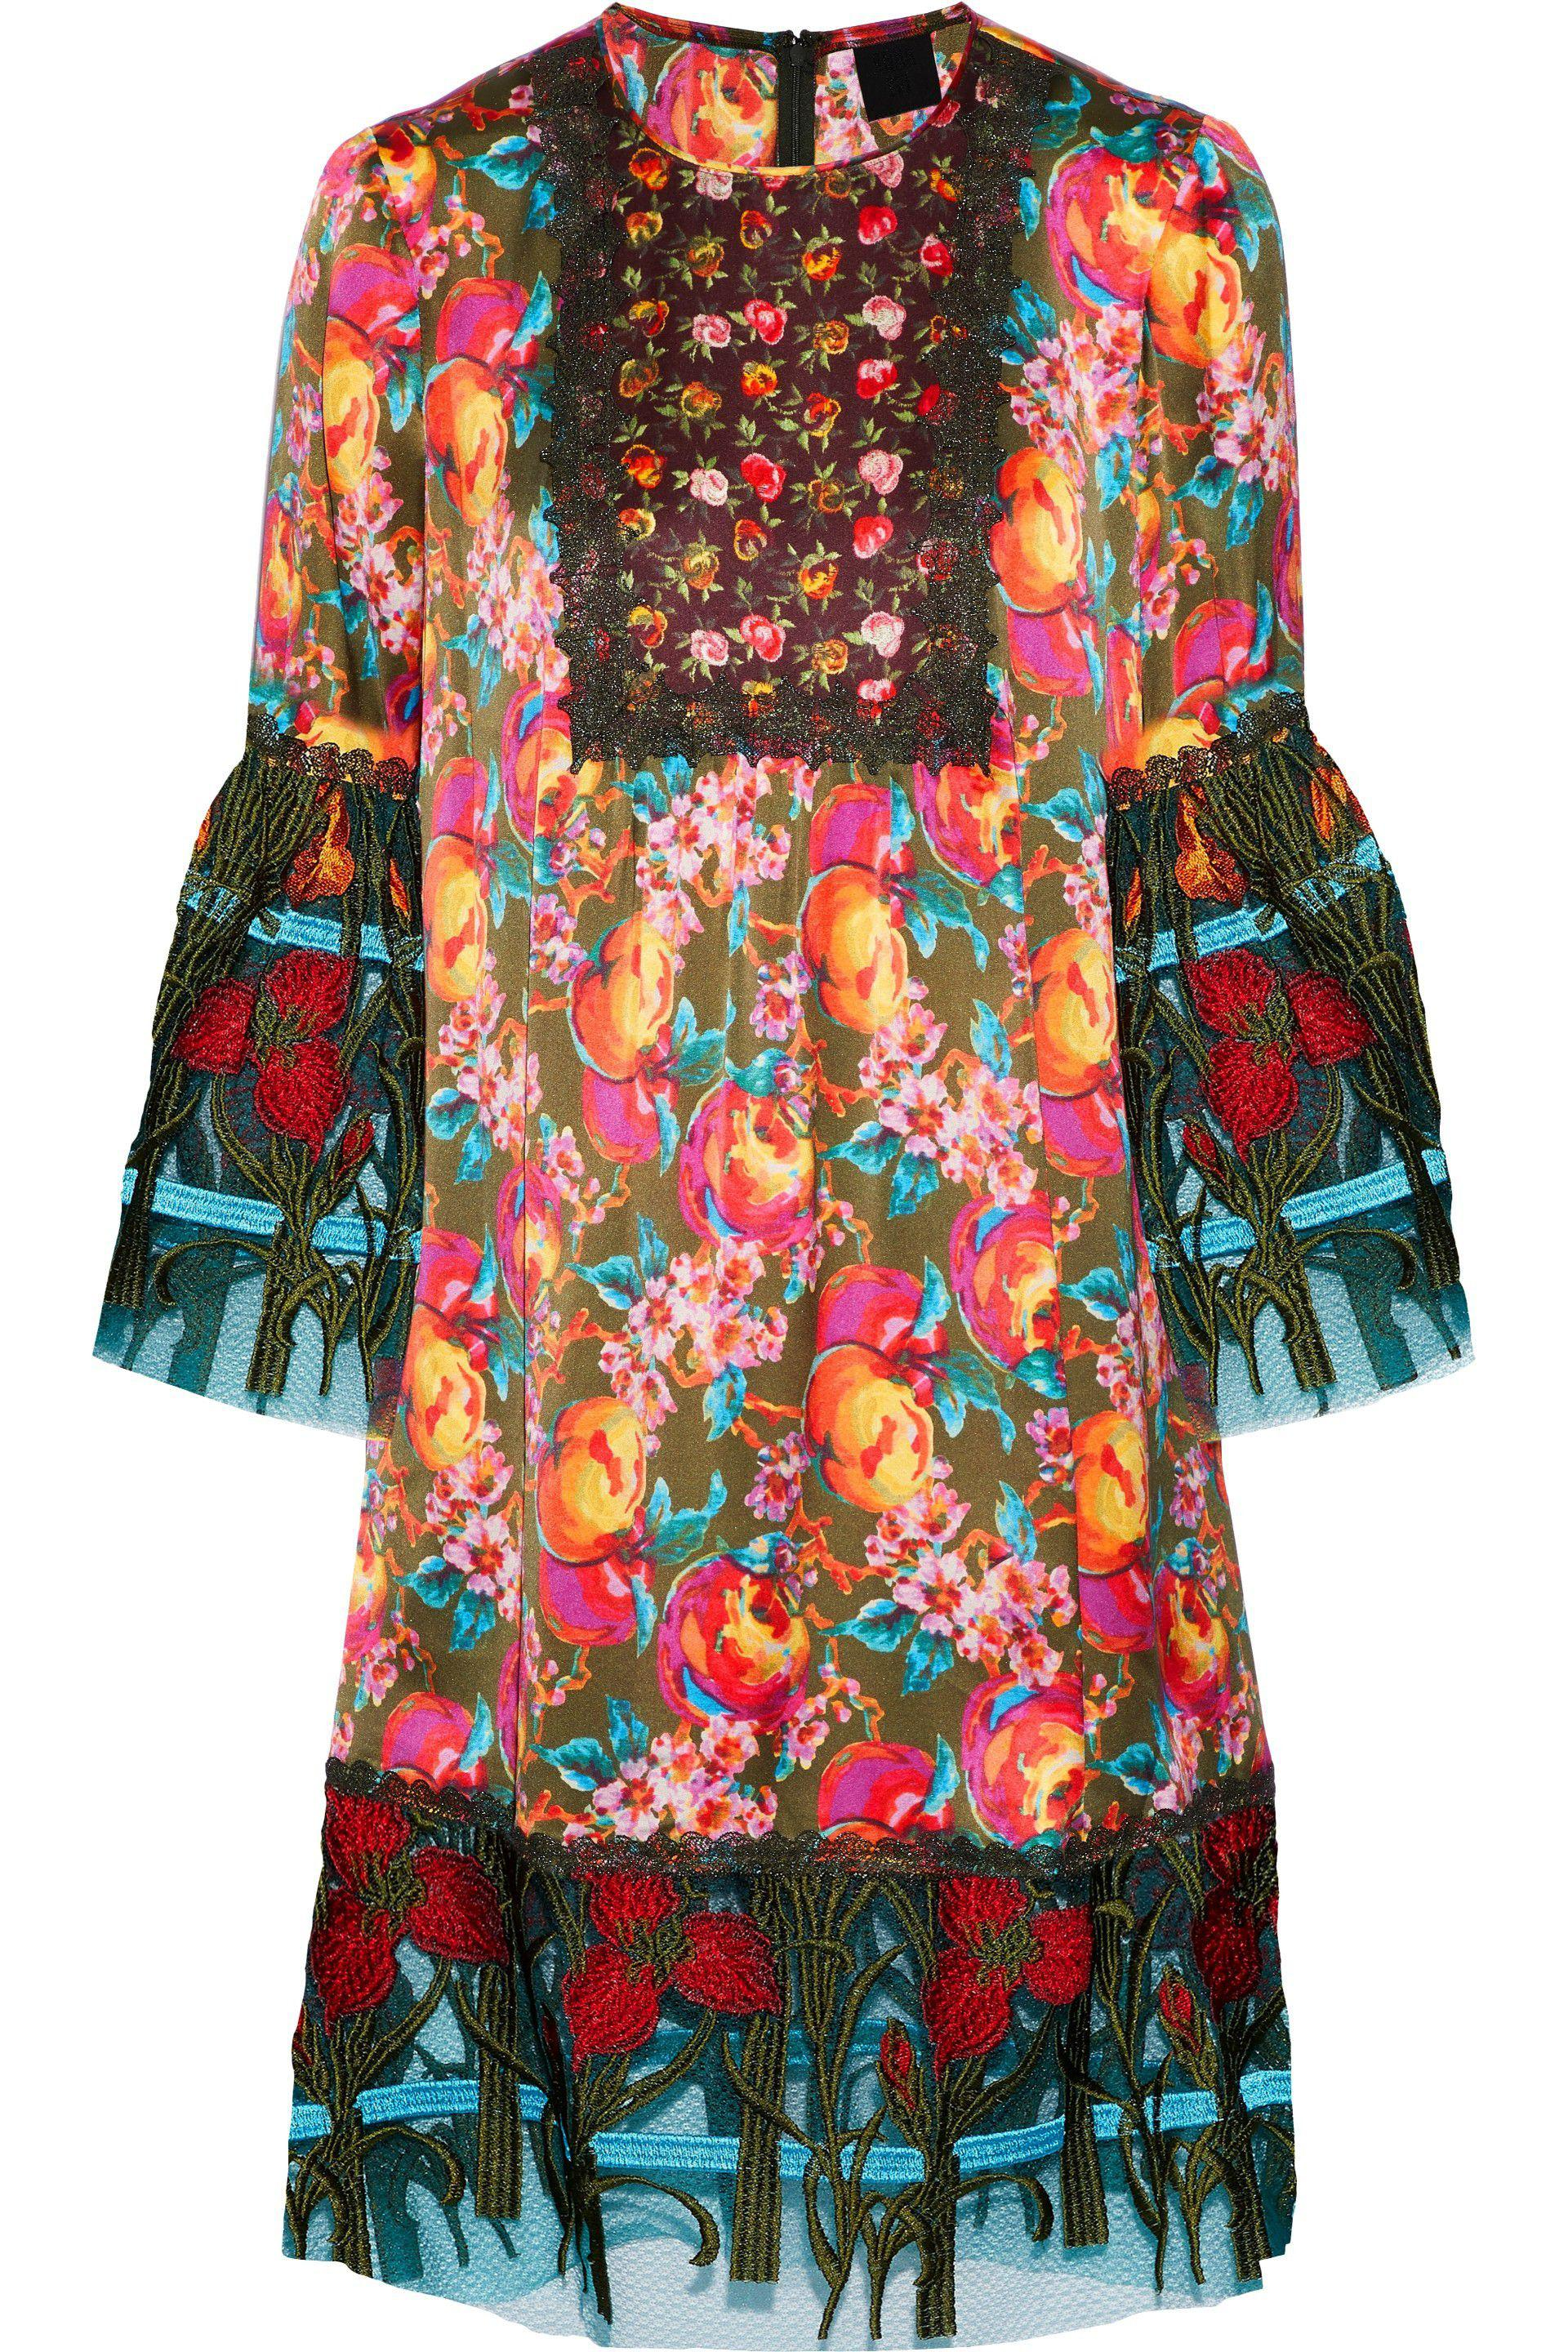 Anna Sui Woman Embroidered Tulle-paneled Printed Silk-blend Dress Multicolor Size M Anna Sui De1Omo